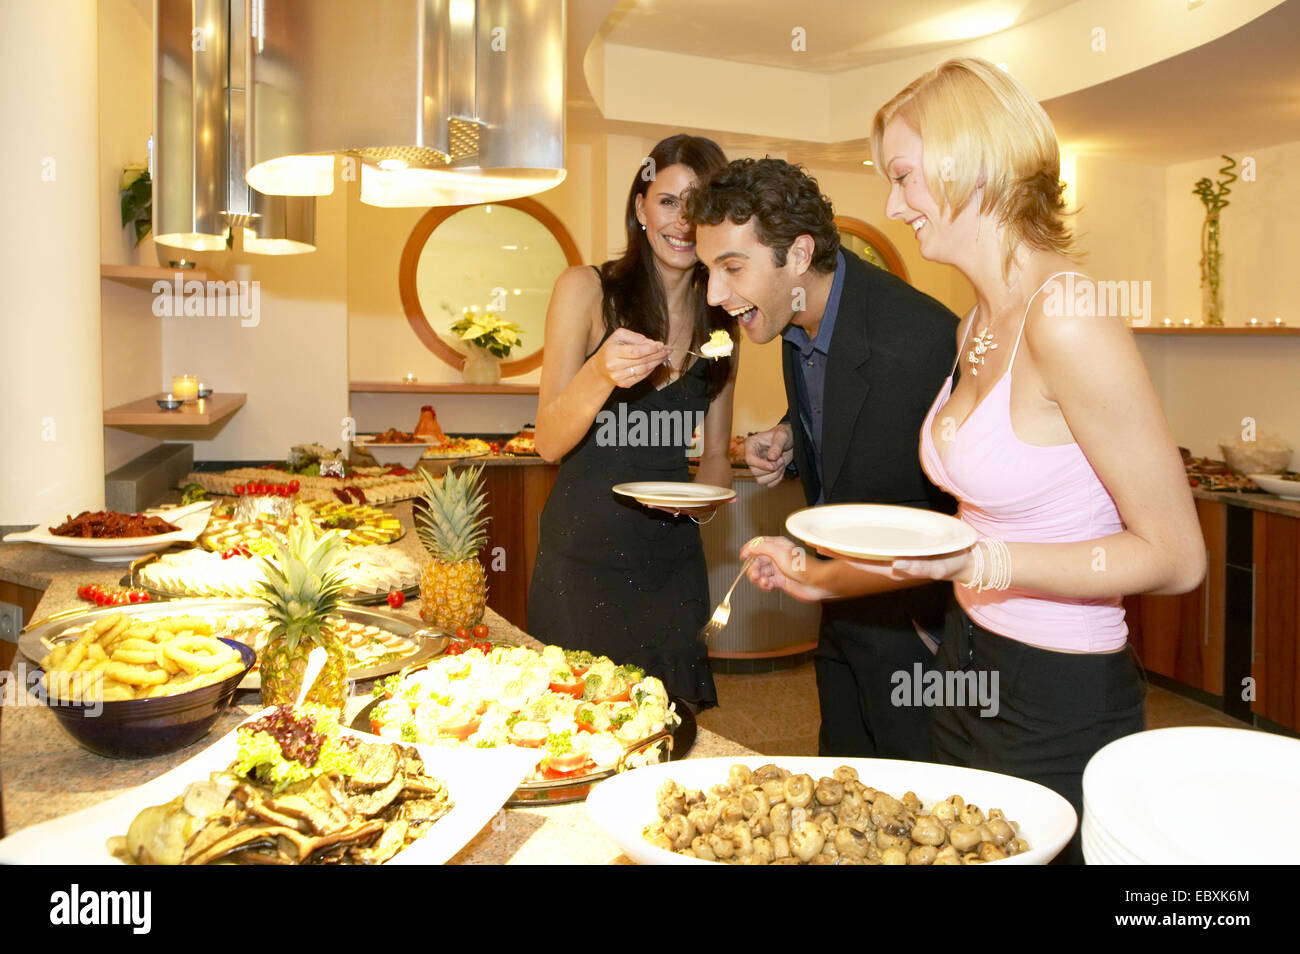 Man and two women serving themselves at a buffet - Stock Image